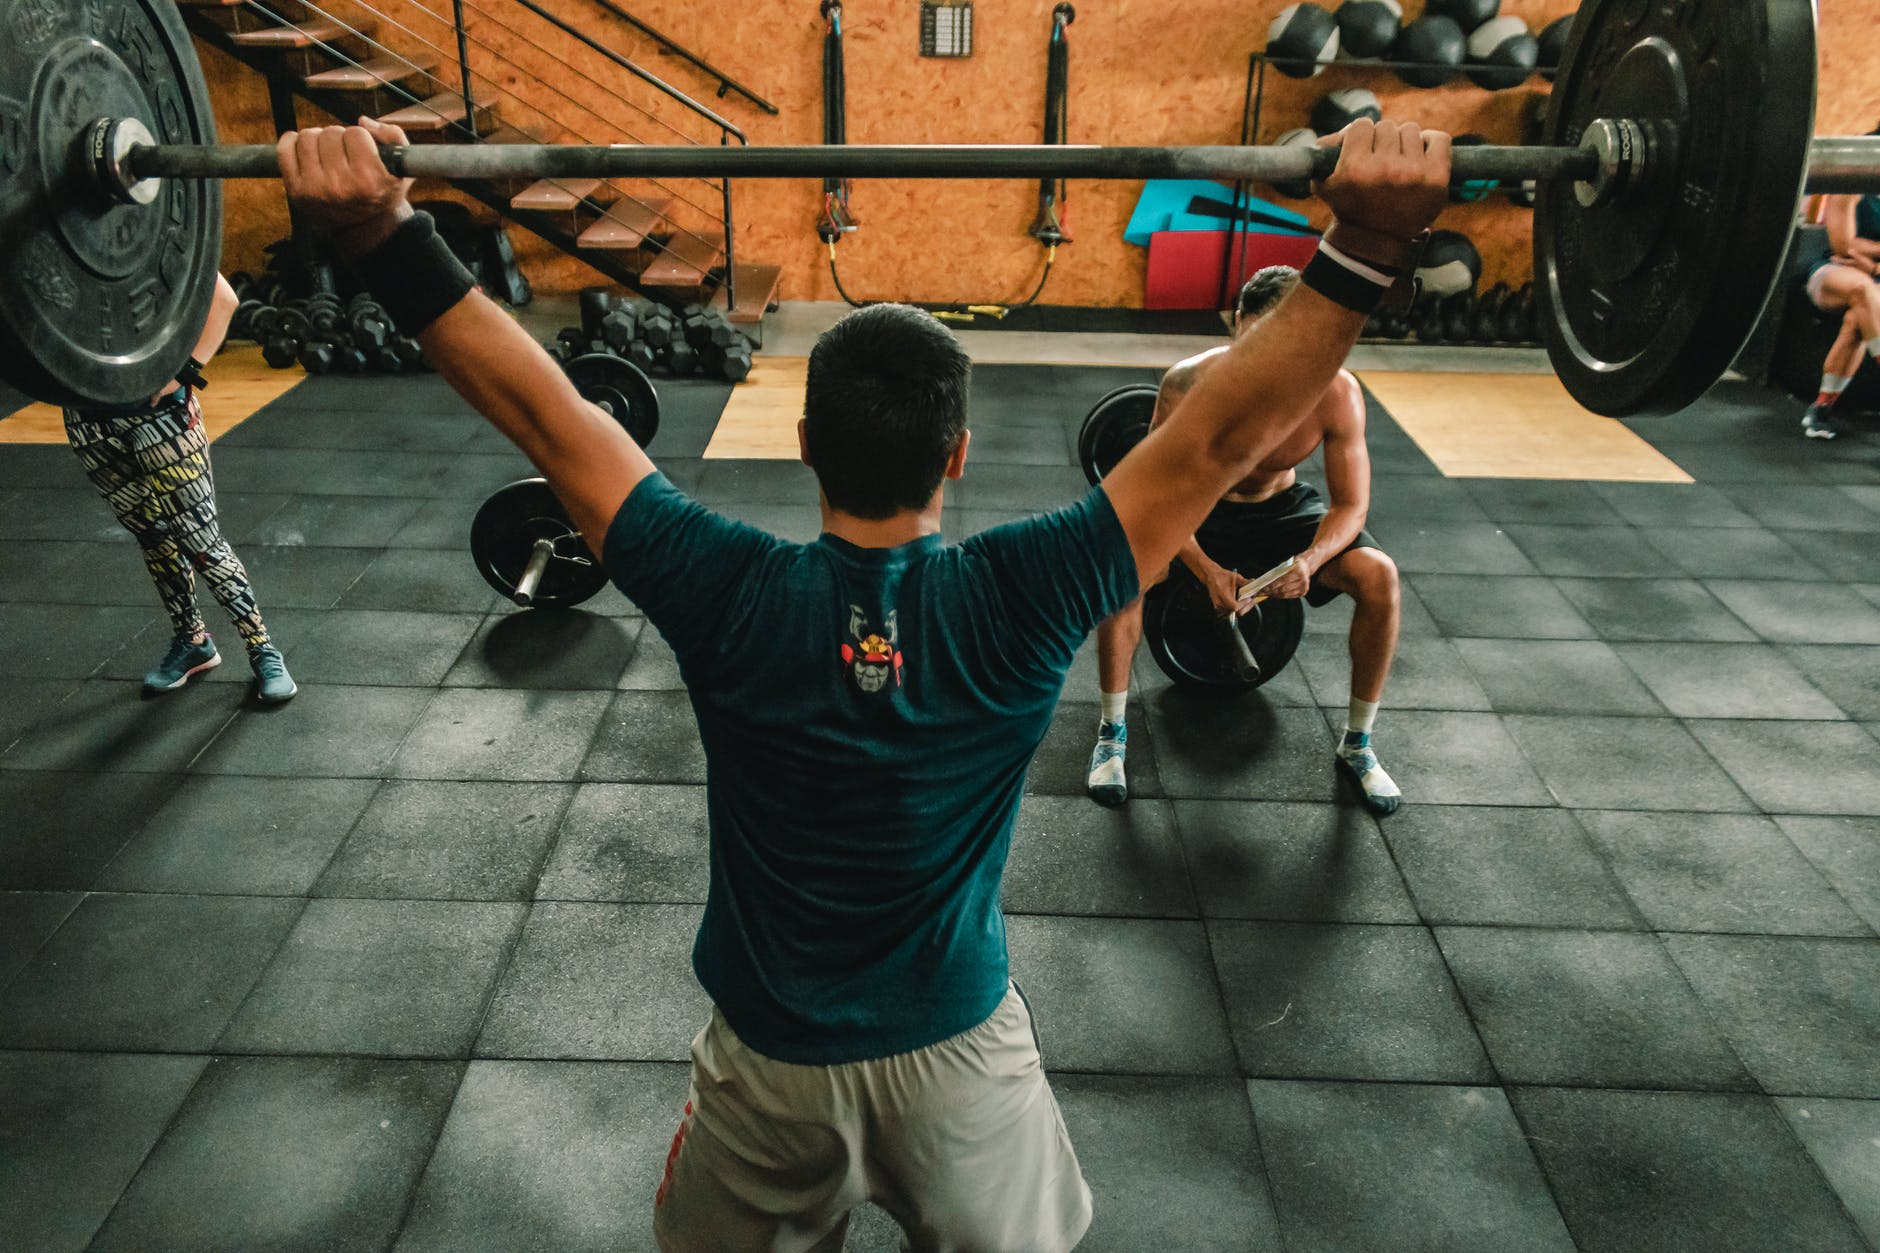 person lifting barbell indoors